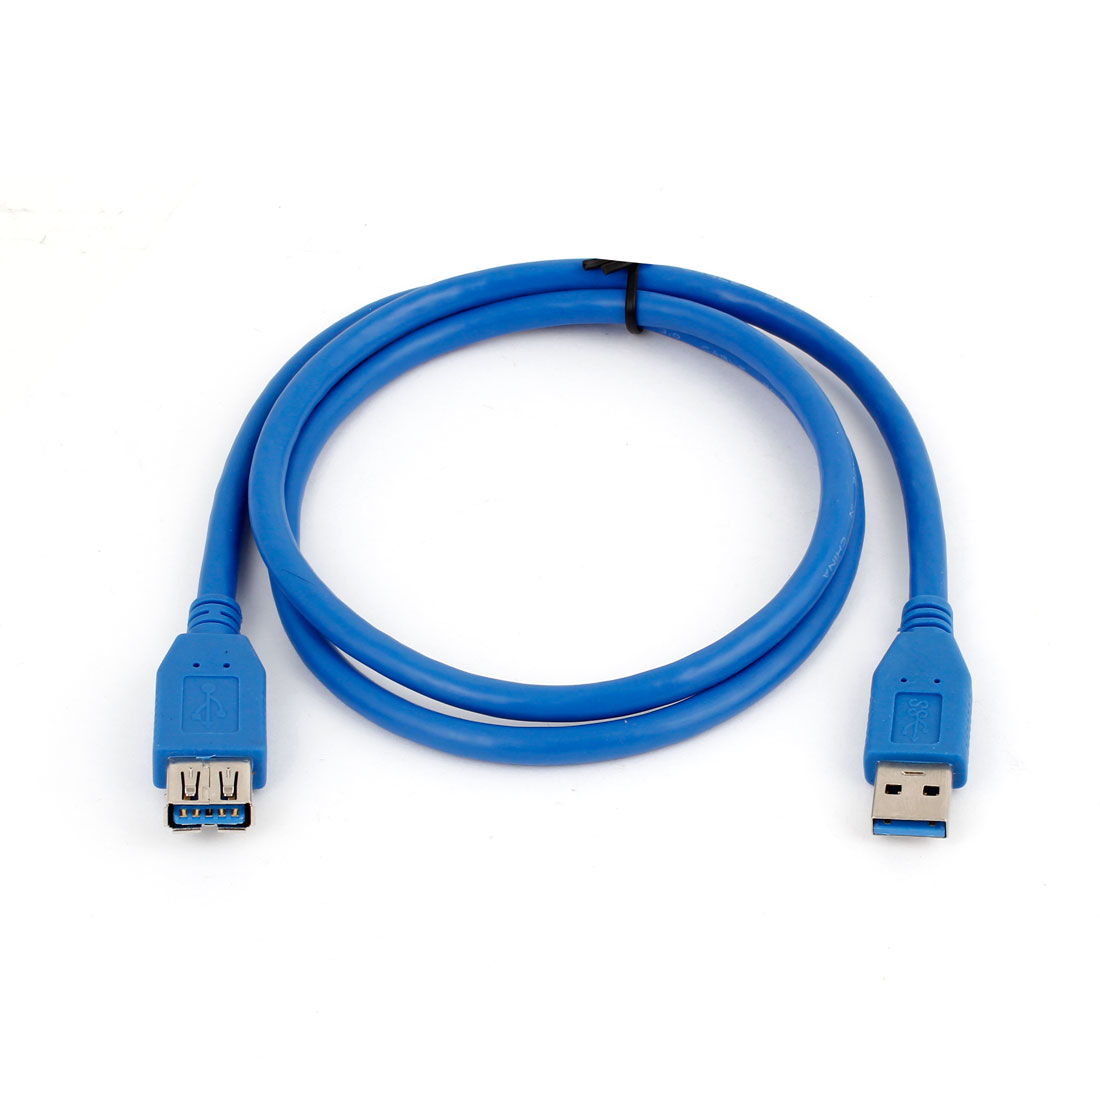 100cm 3.3ft Data Transfer USB 3.0 A Male to Female Extension Cable Cord Blue